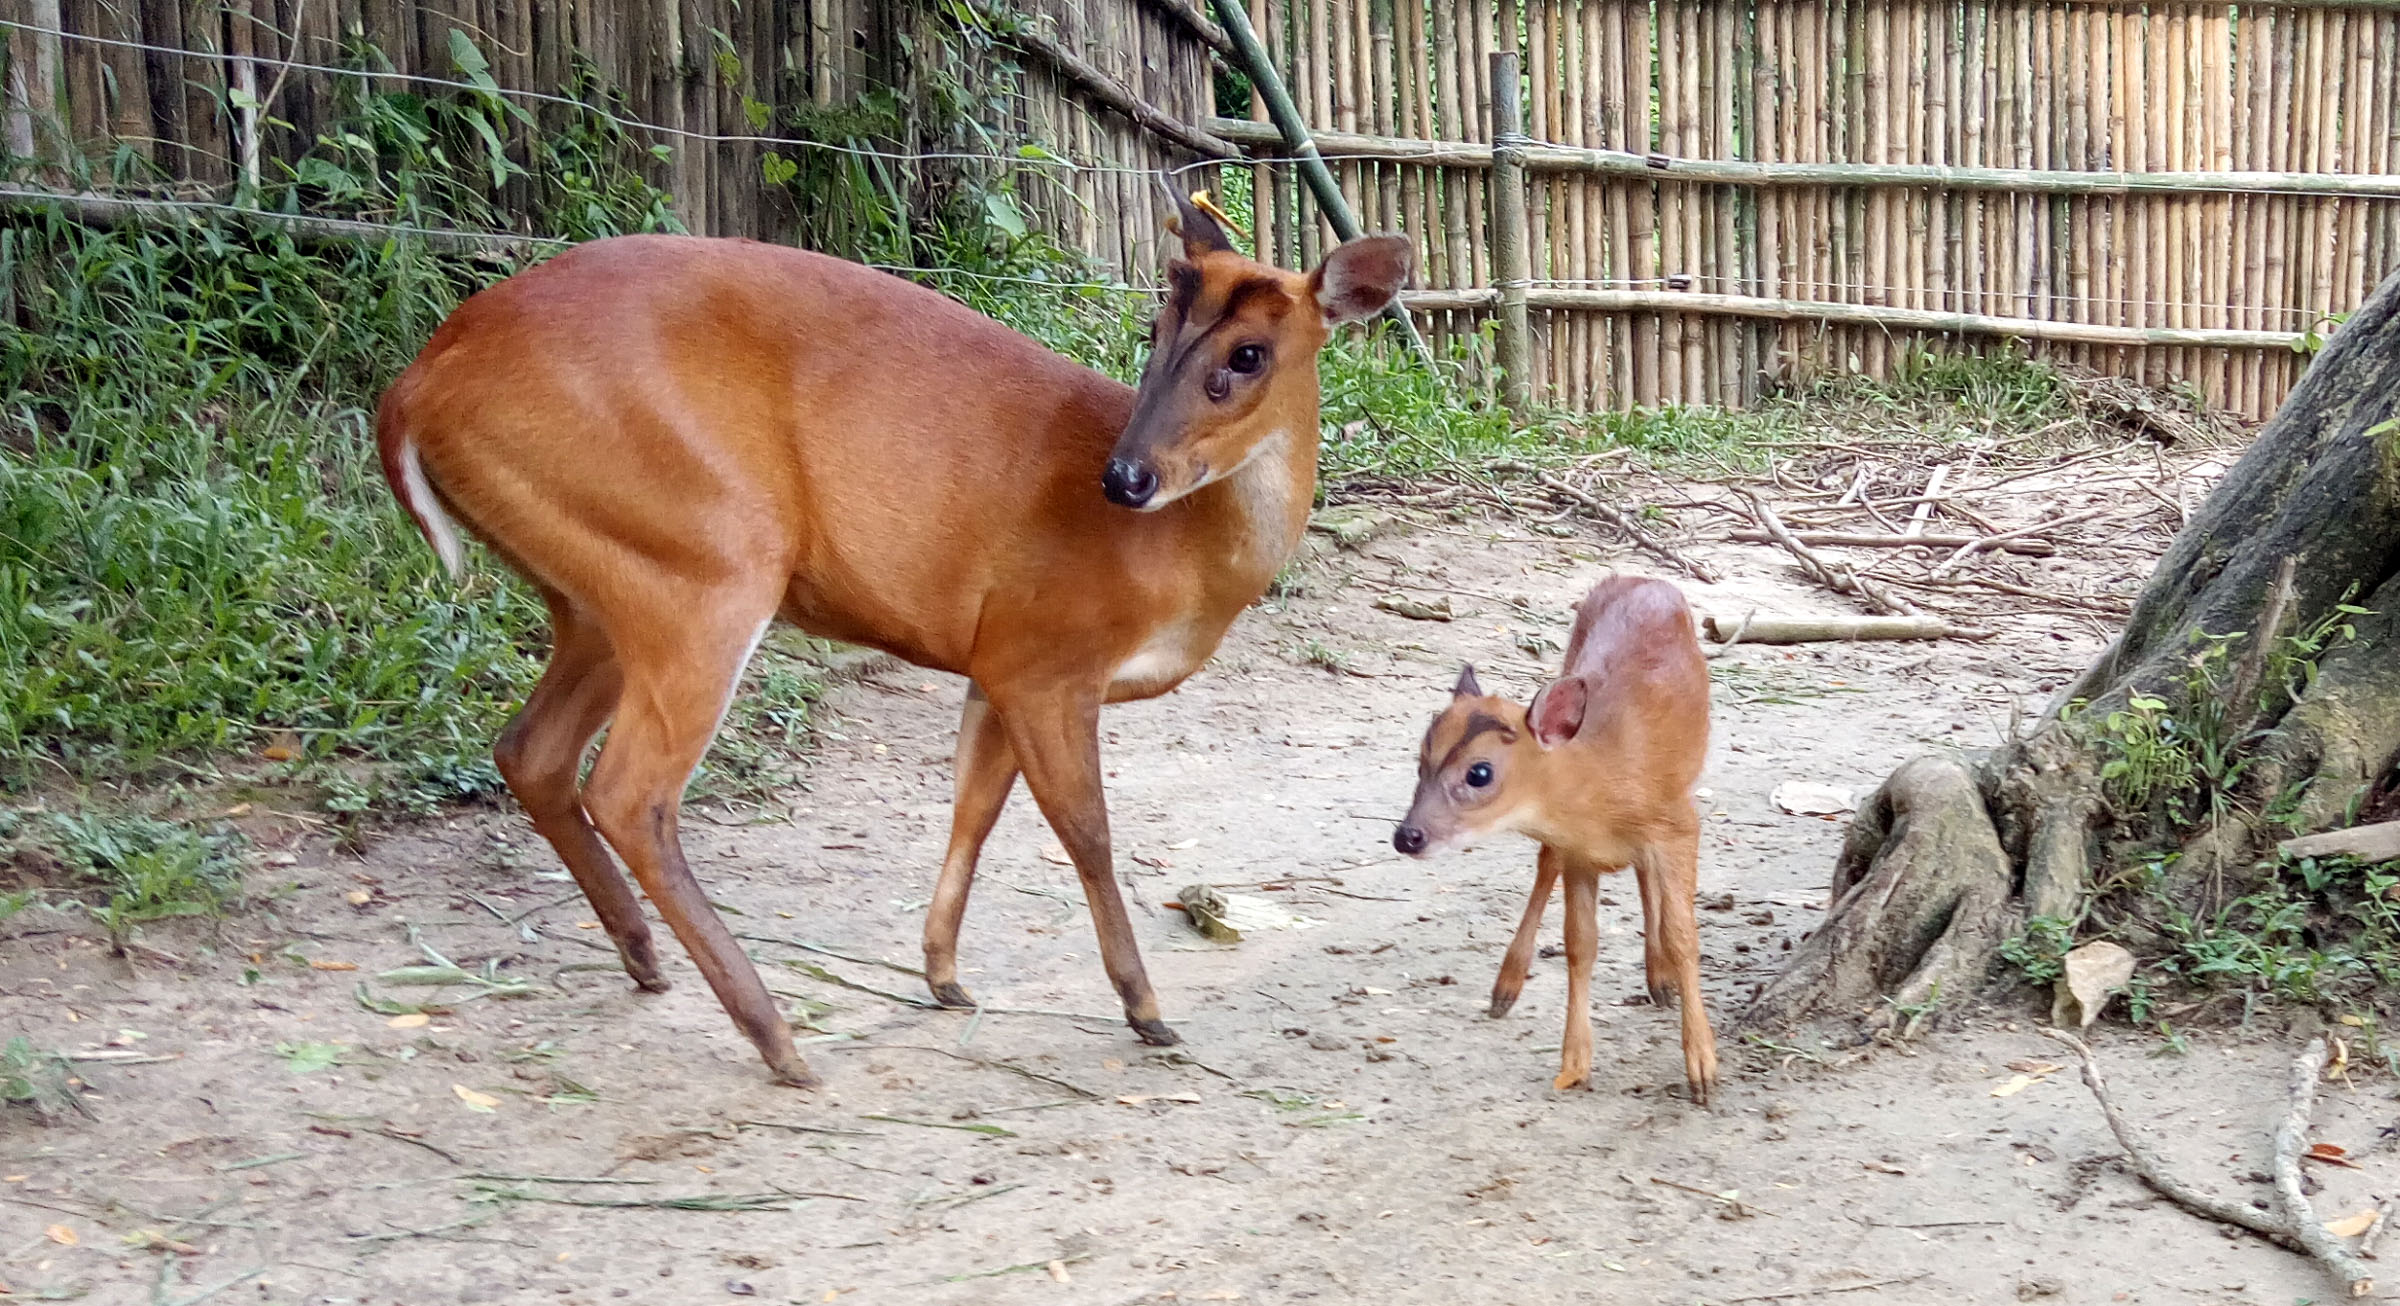 A barking deer, rescued at the Centre, returns every year to safely deliver her new fawns at the campus. Photo: Panjit Basumatary/IFAW-WTI